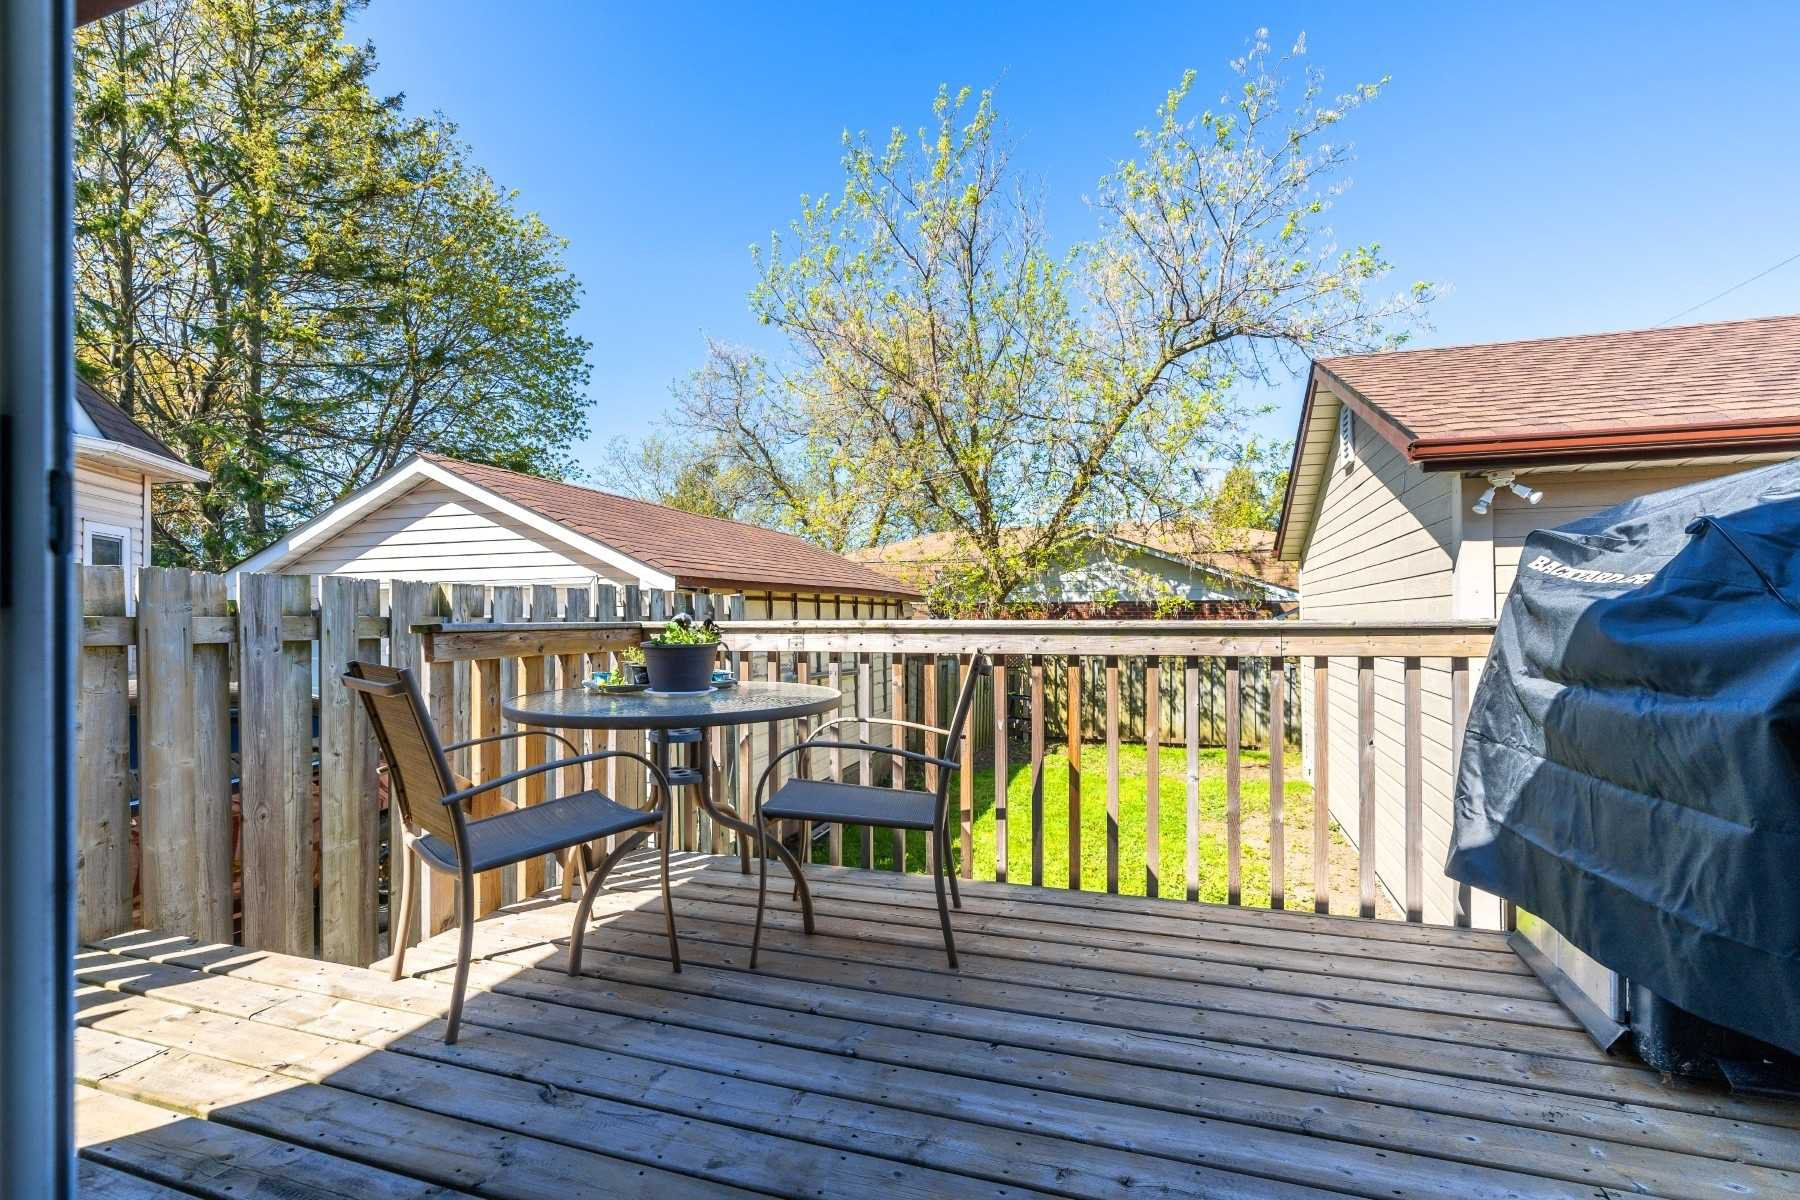 Photo 31: Photos: 40 Eastlawn Street in Oshawa: Donevan House (Bungalow) for sale : MLS®# E4769026